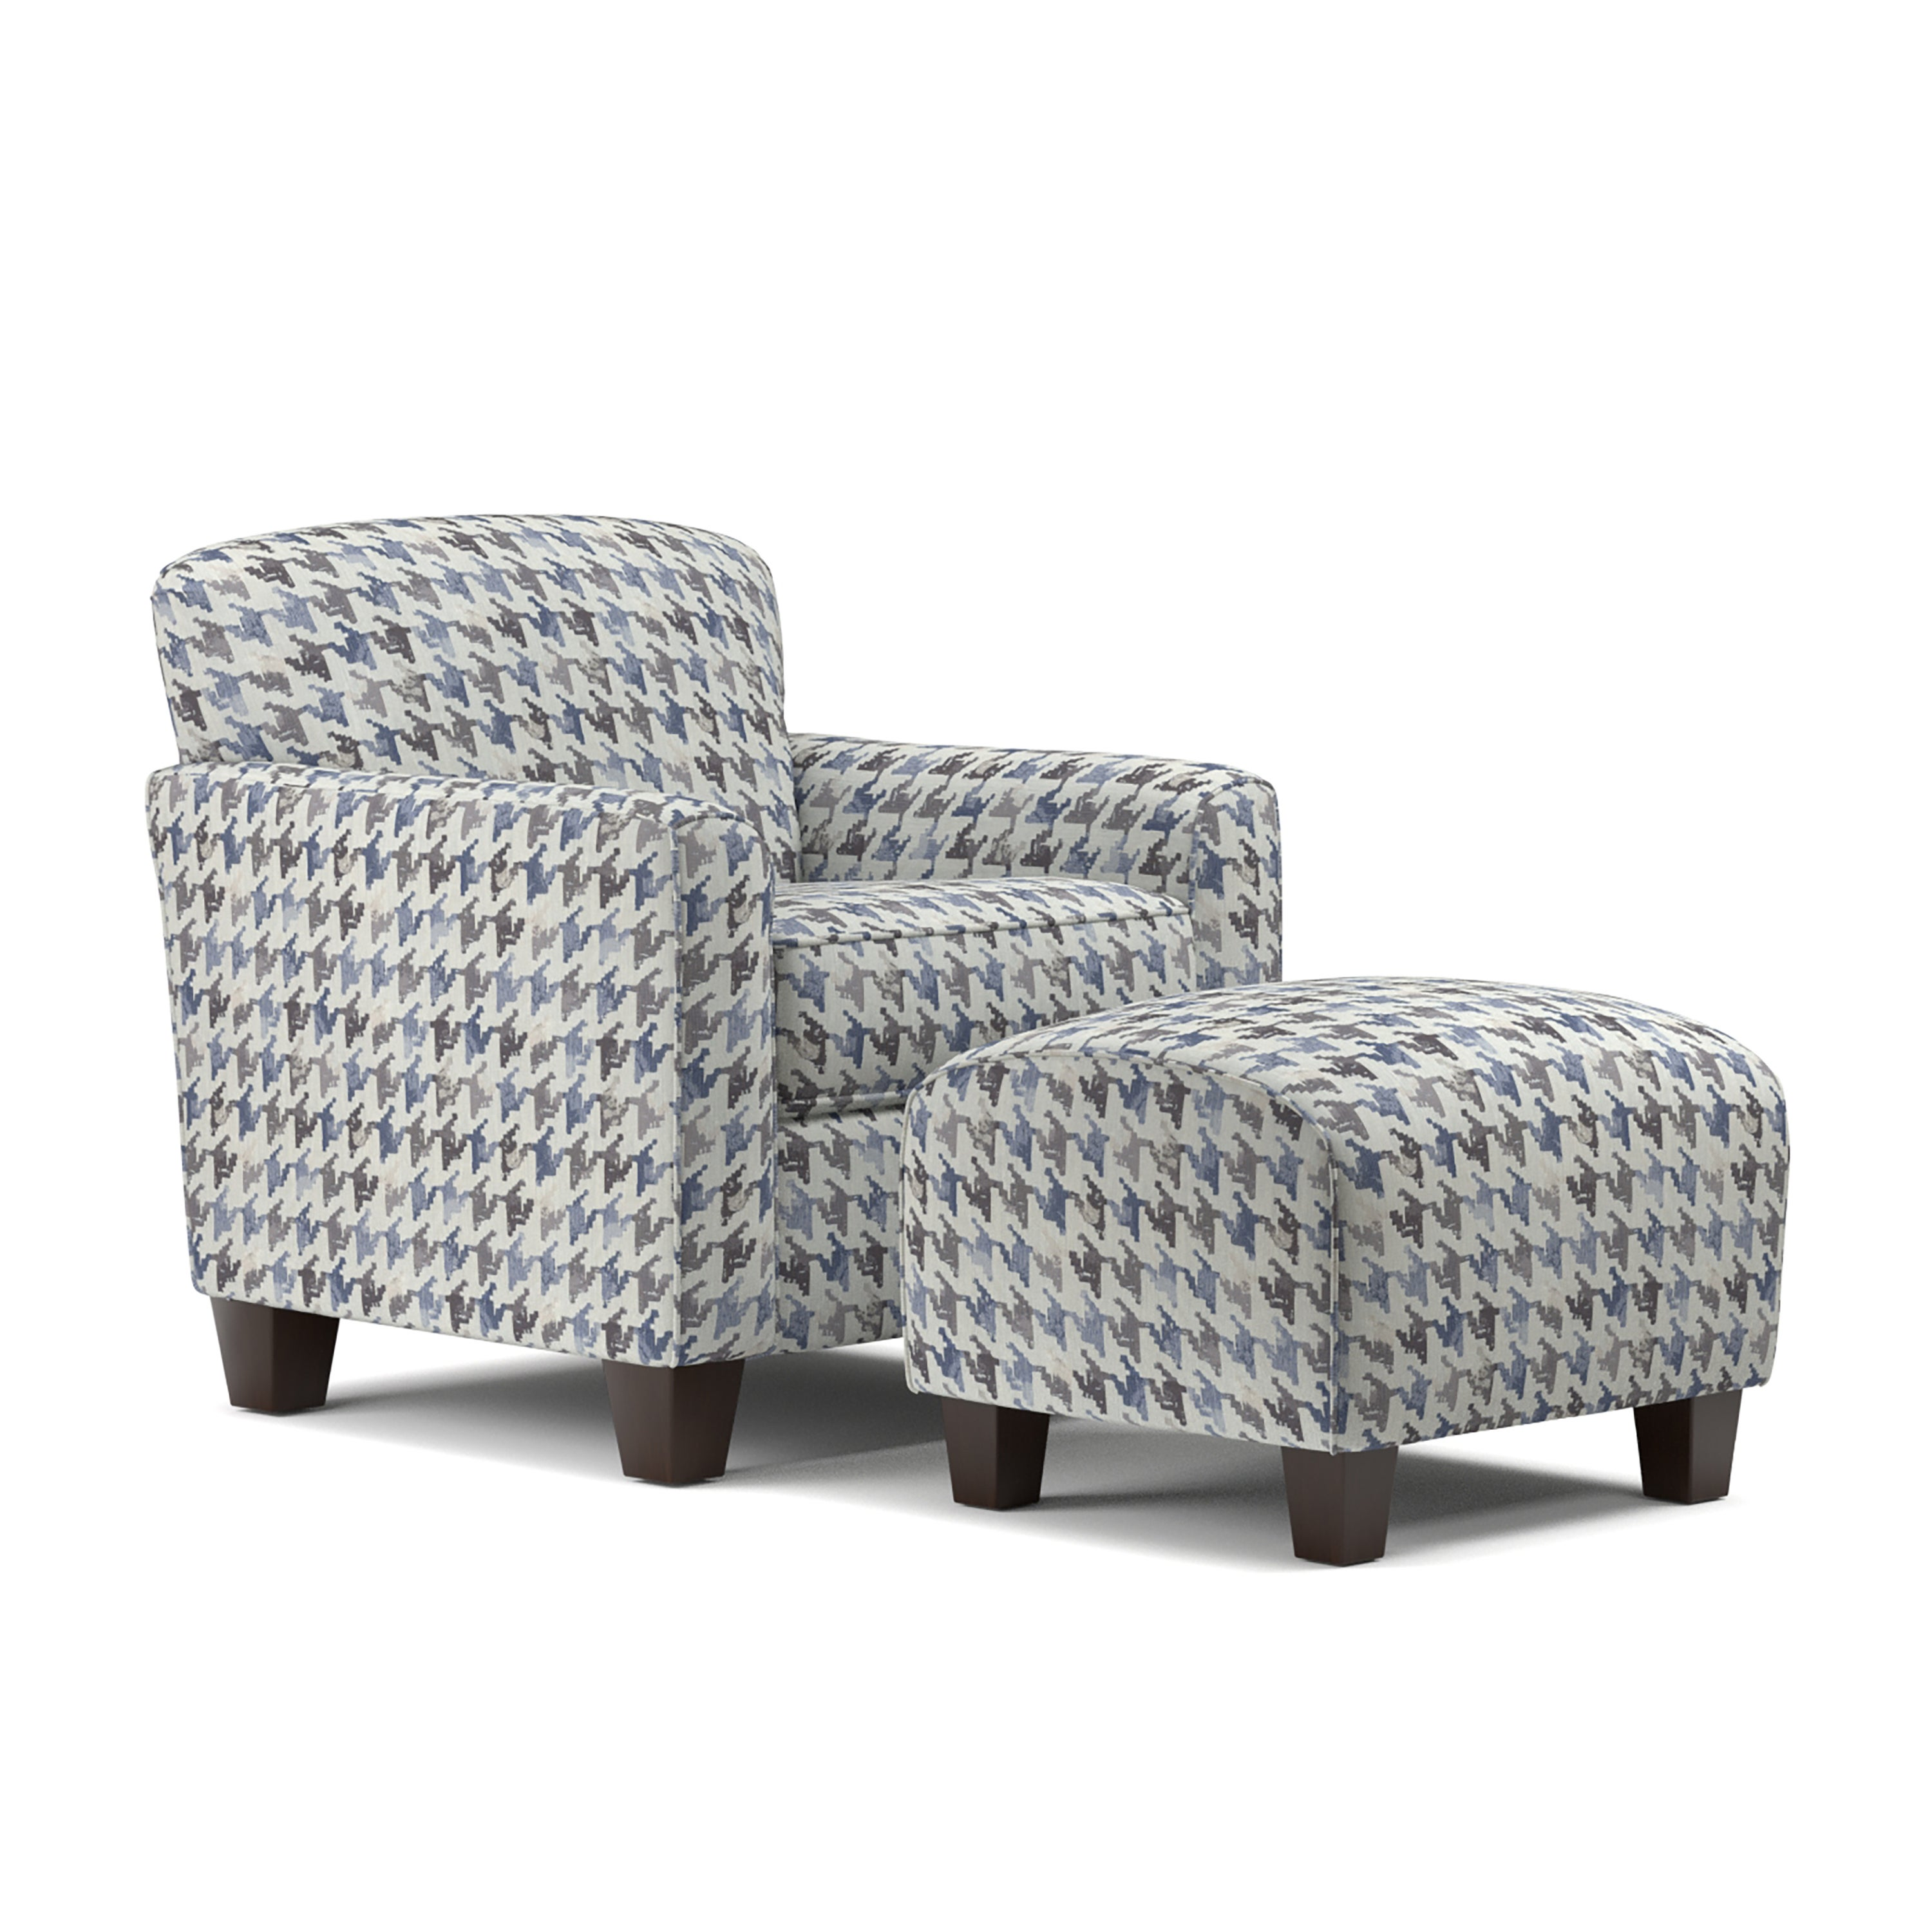 sofa signature set room with warehouse blue tapered chairs overstock and mocha ottoman cafe by upholstered chair living darcy contemporary legs design ottomans